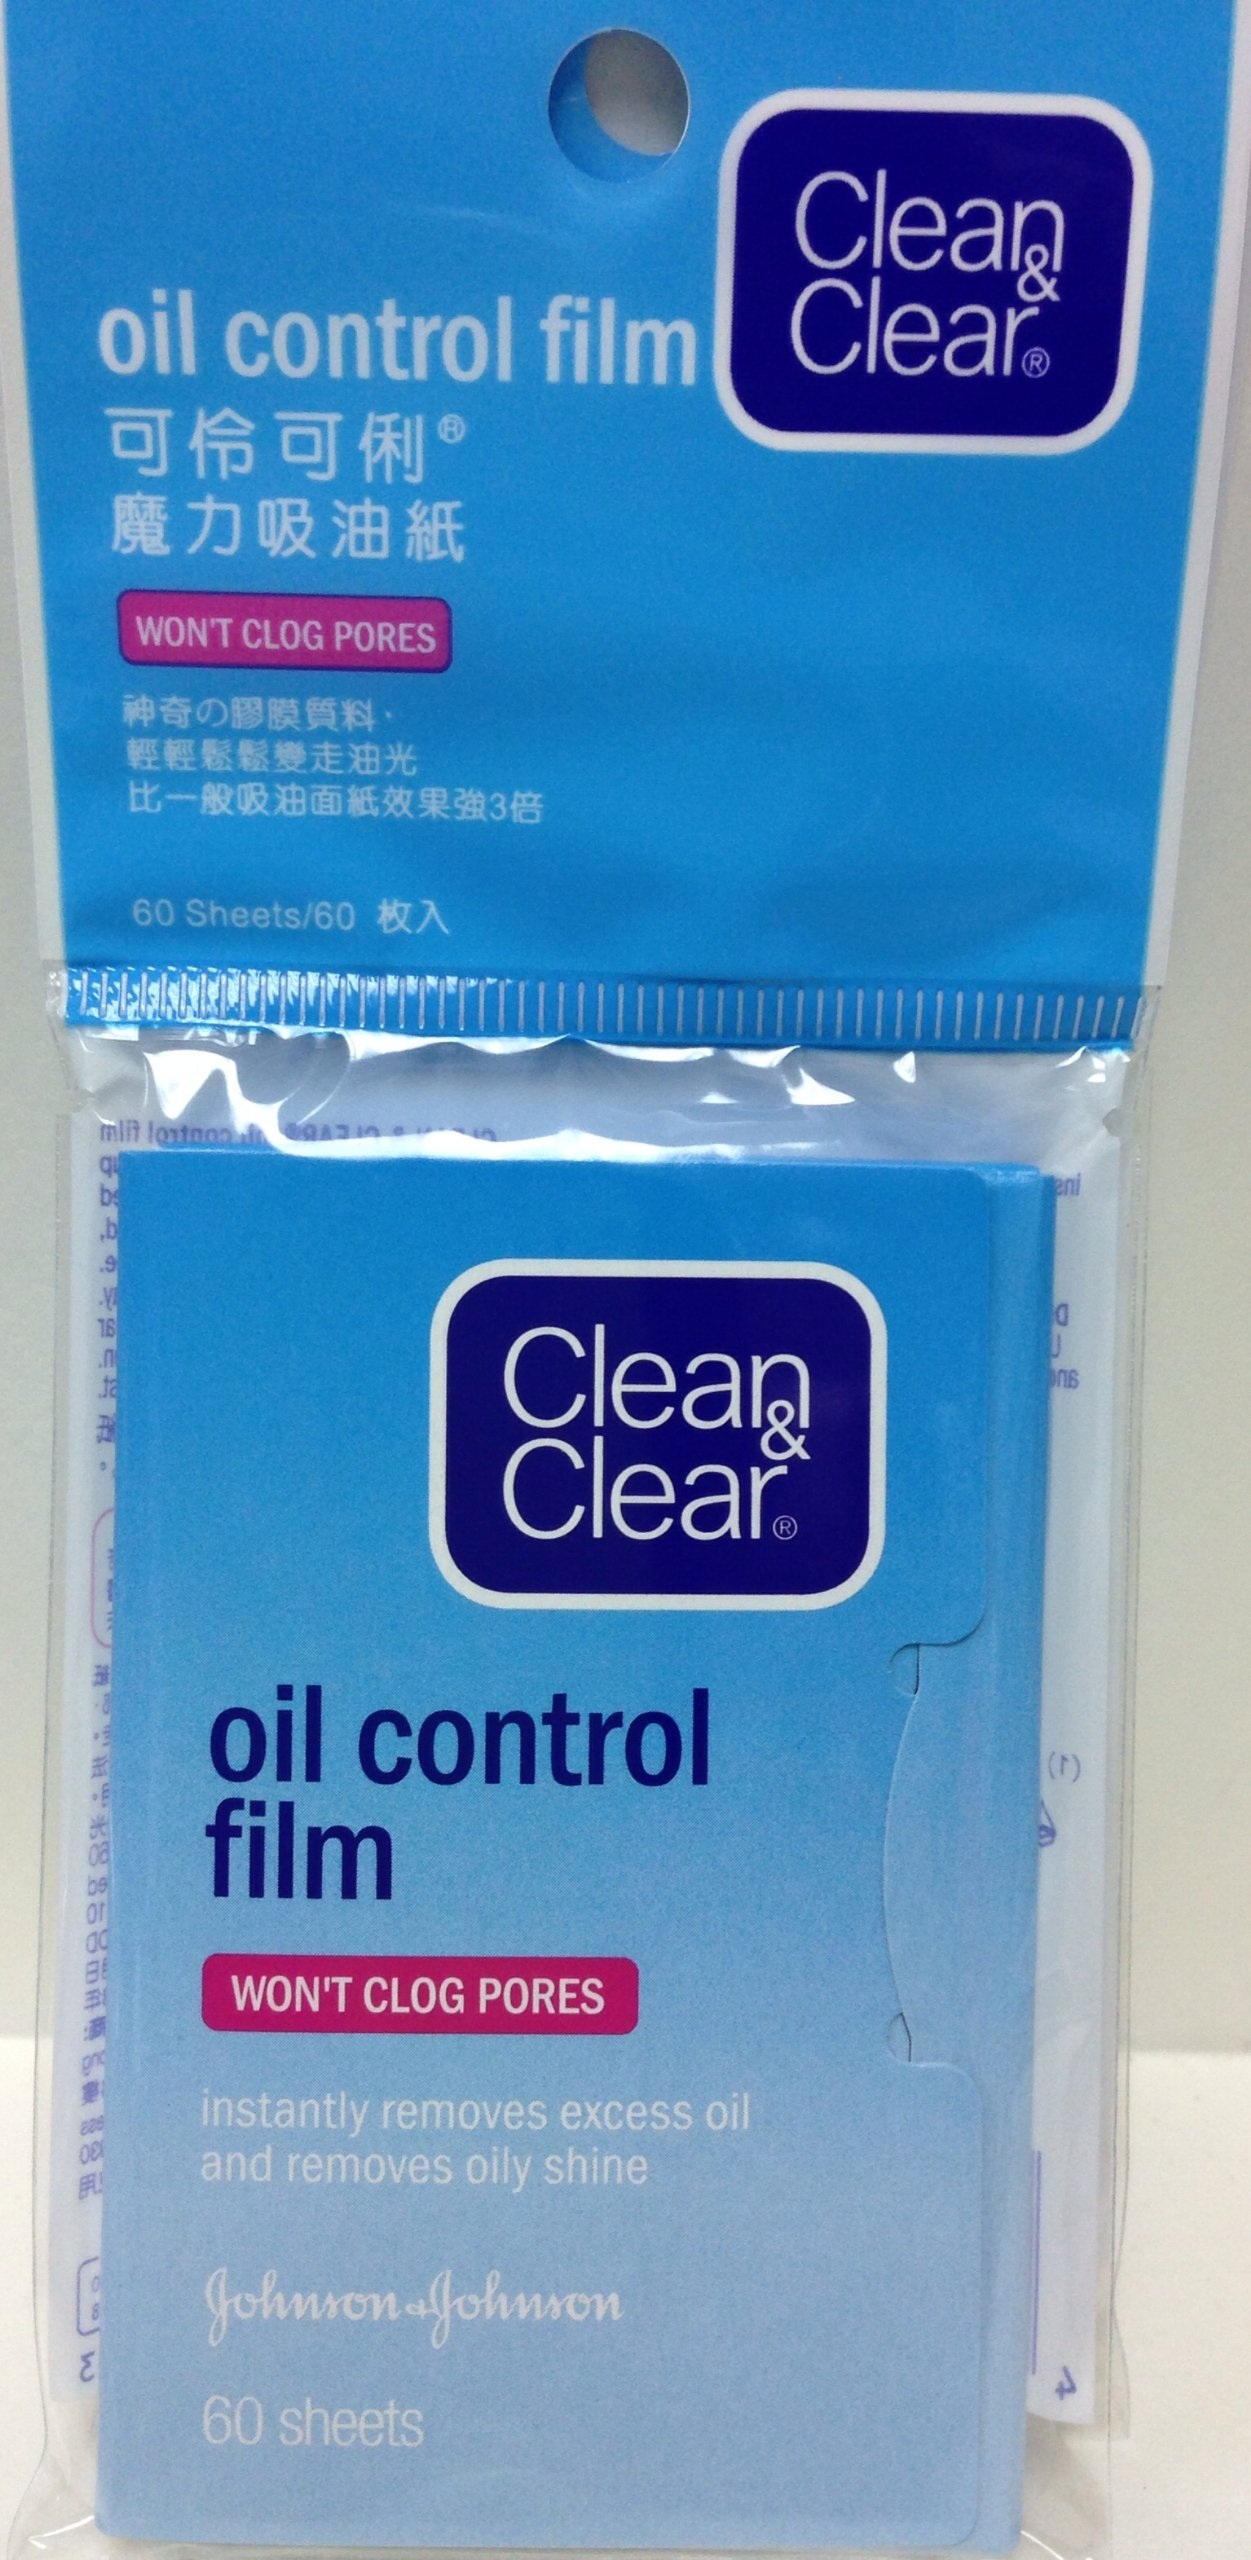 Clean and Clear Oil Control Film x 6 packs by Johnson & Johnson